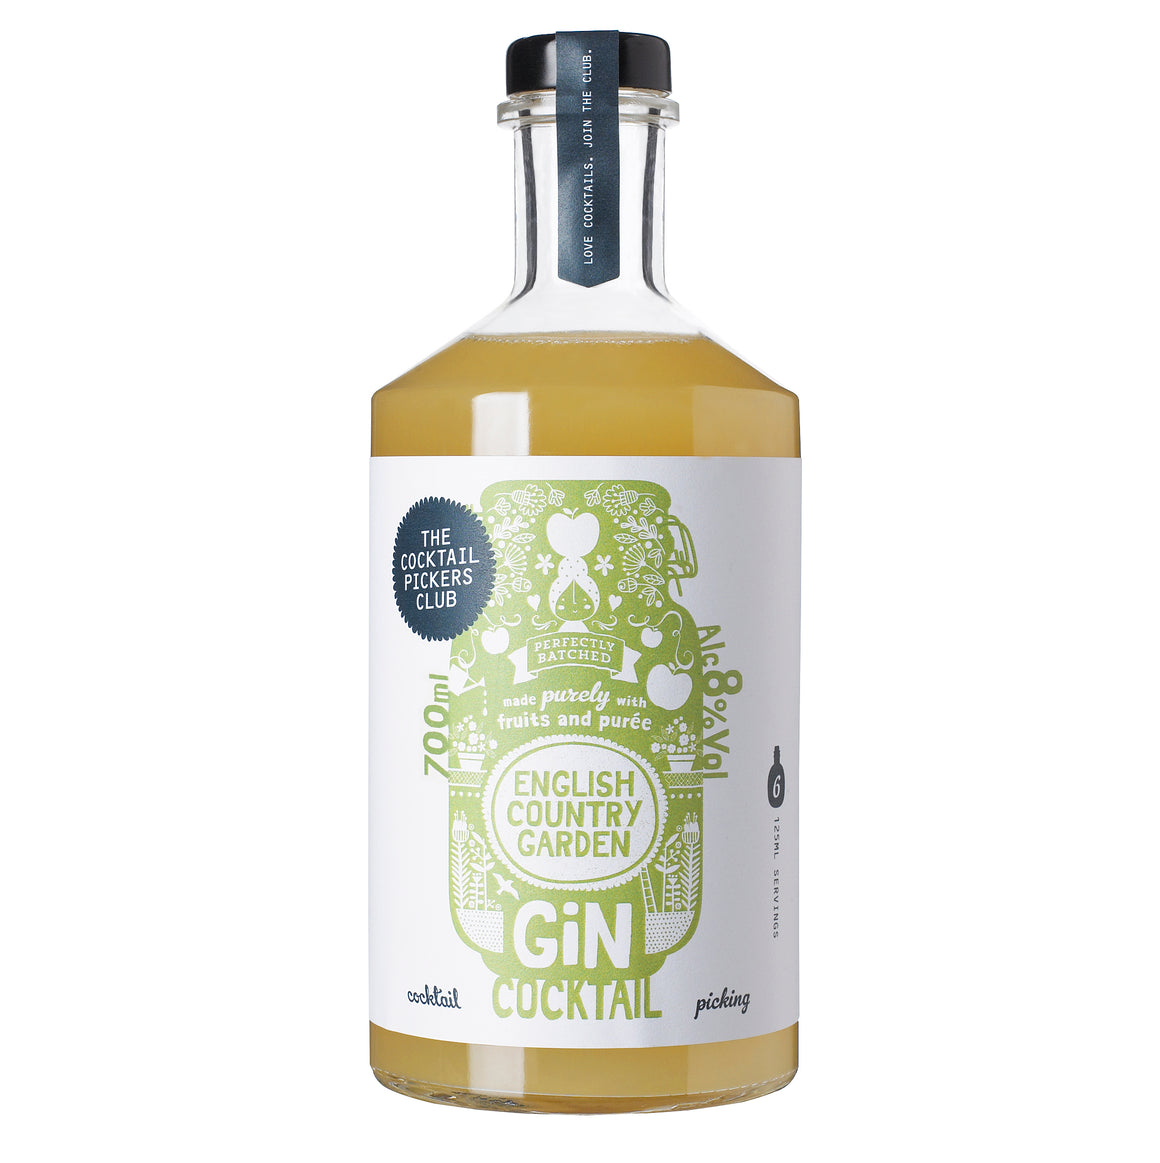 English Country Garden Gin Cocktail 3x 700ml FREE DELIVERY*